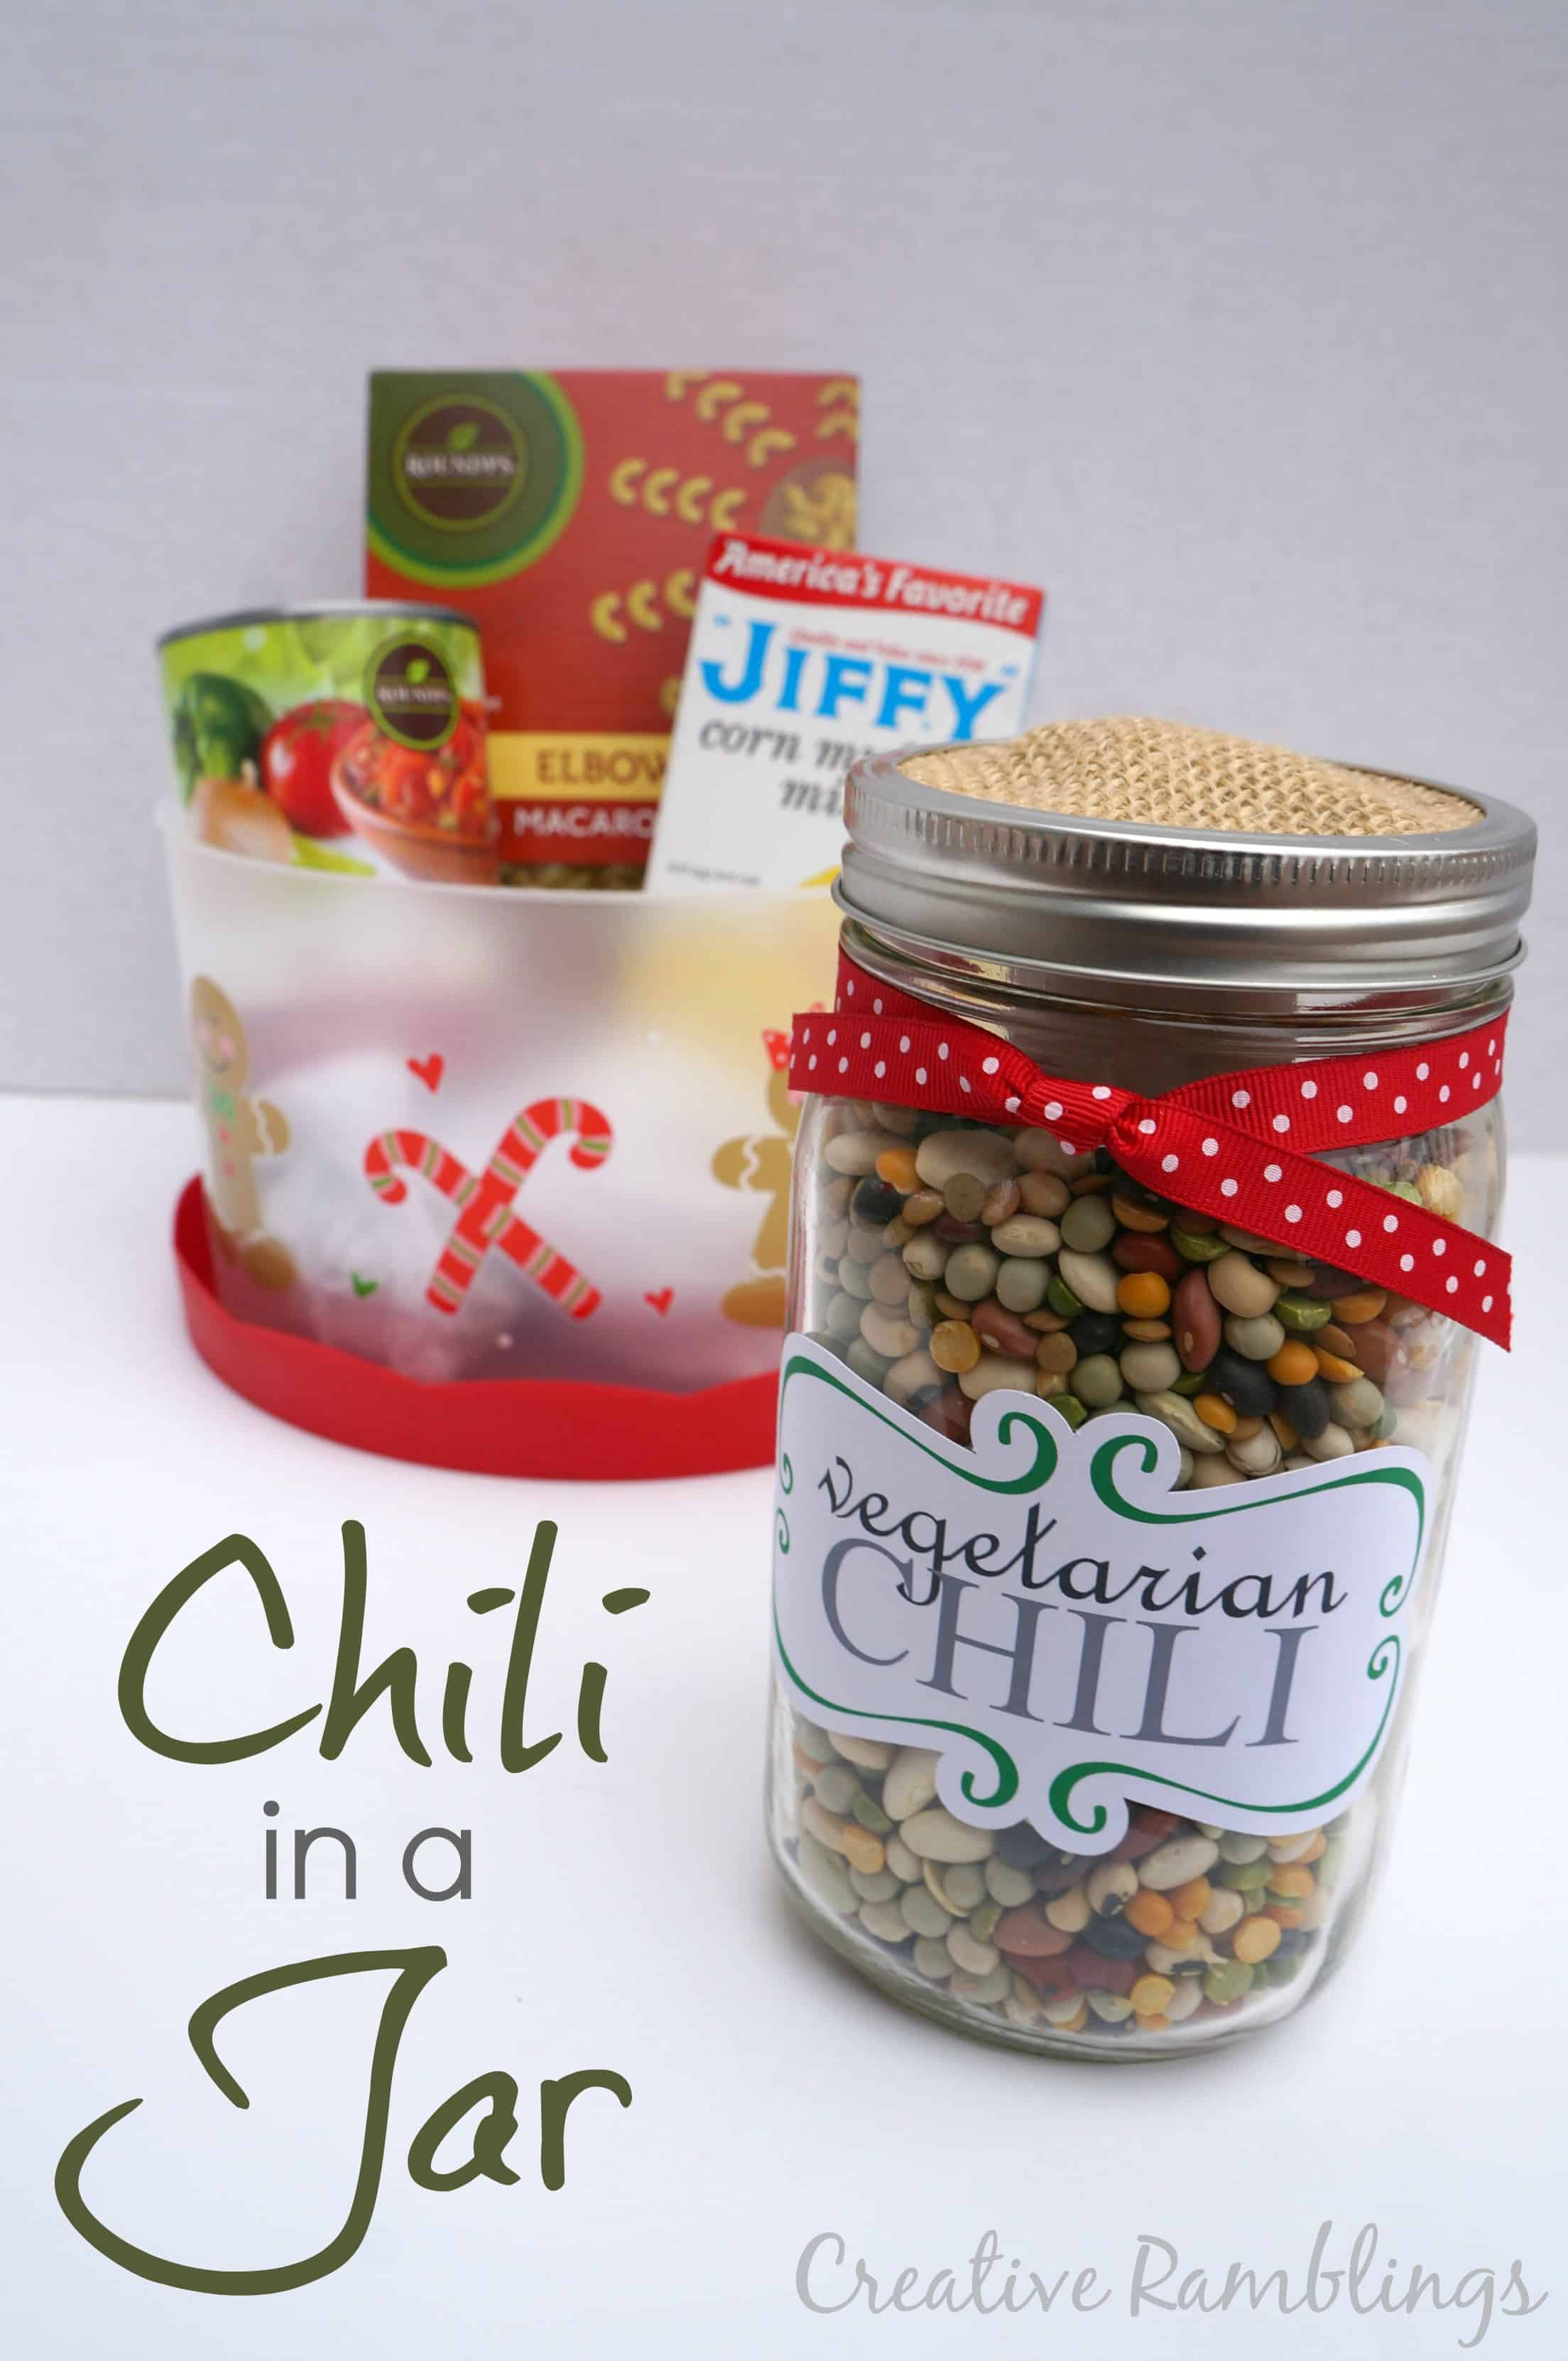 Chili in a jar gift from Pick n Save